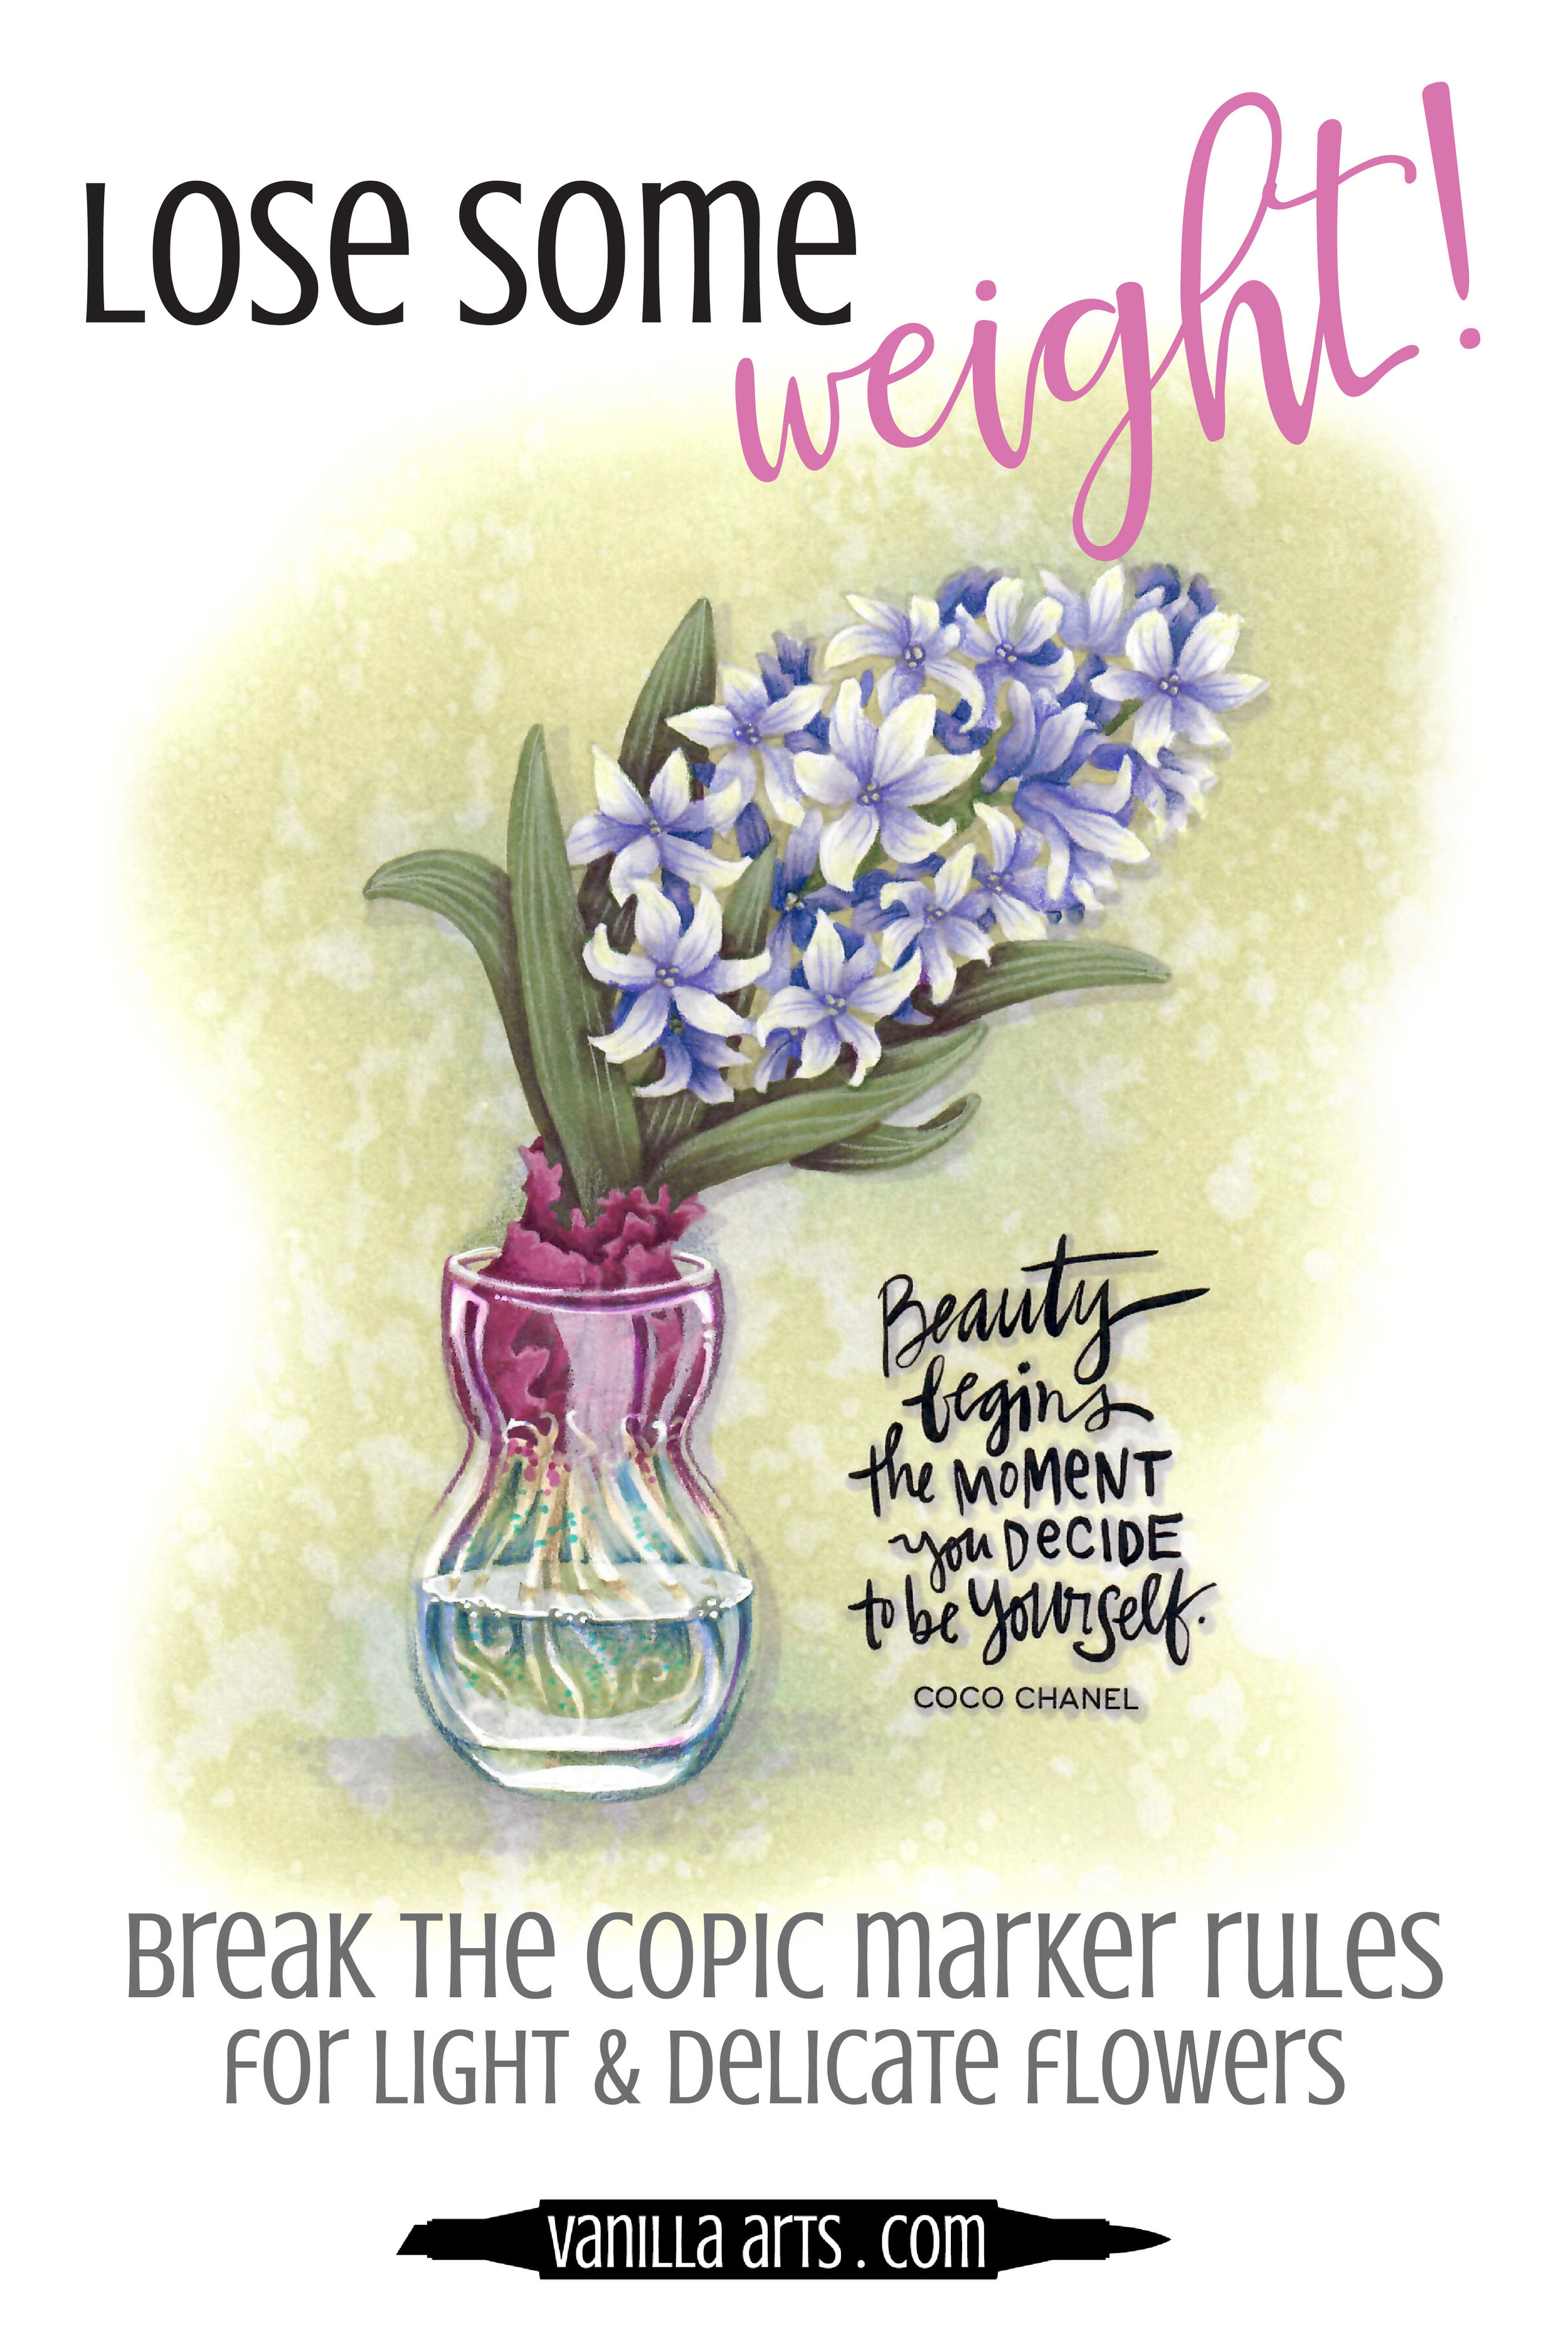 Do your floral projects turn out heavy looking? It's not your coloring skills, it's not the Copic Markers. Learn how to break the usual Copic shading rules to color lightweight and delicate floral stamps. Livestream broadcast coloring demonstration for intermediate to advanced adult colorers. | VanillaArts.com